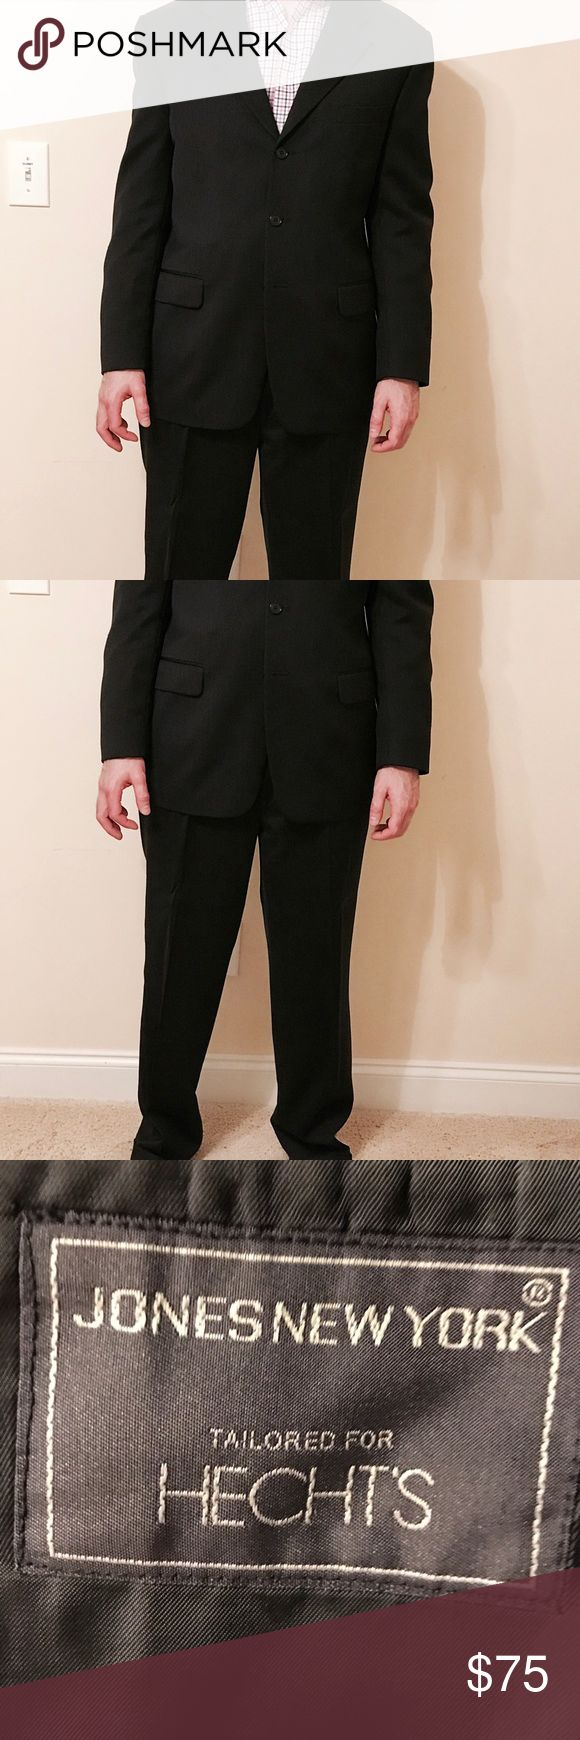 EUC Men's Suit SALE!!!!!! Dark Two Piece Suit, Three Button Front, Color is very dark gray, nearly black. Worn Once. Jones New York Suits & Blazers Suits